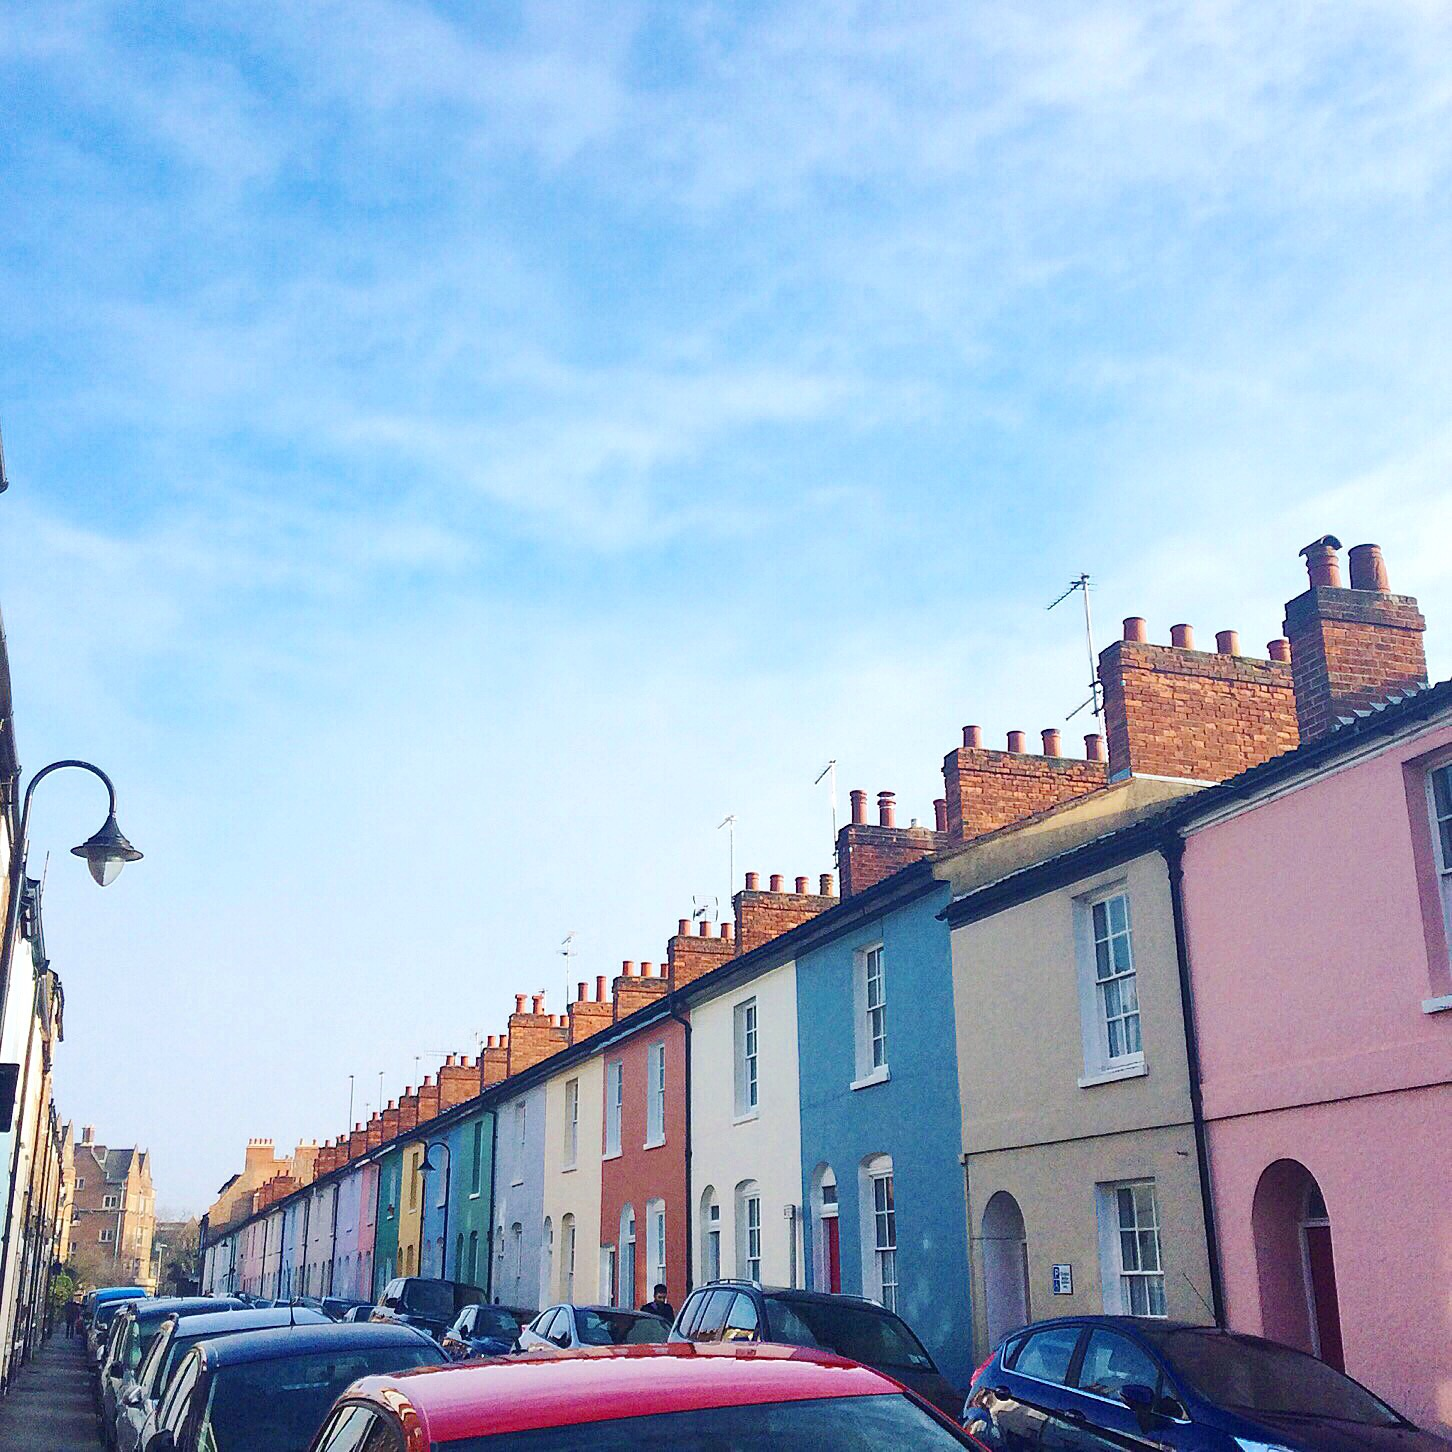 the colorful houses of Jericho, Oxford